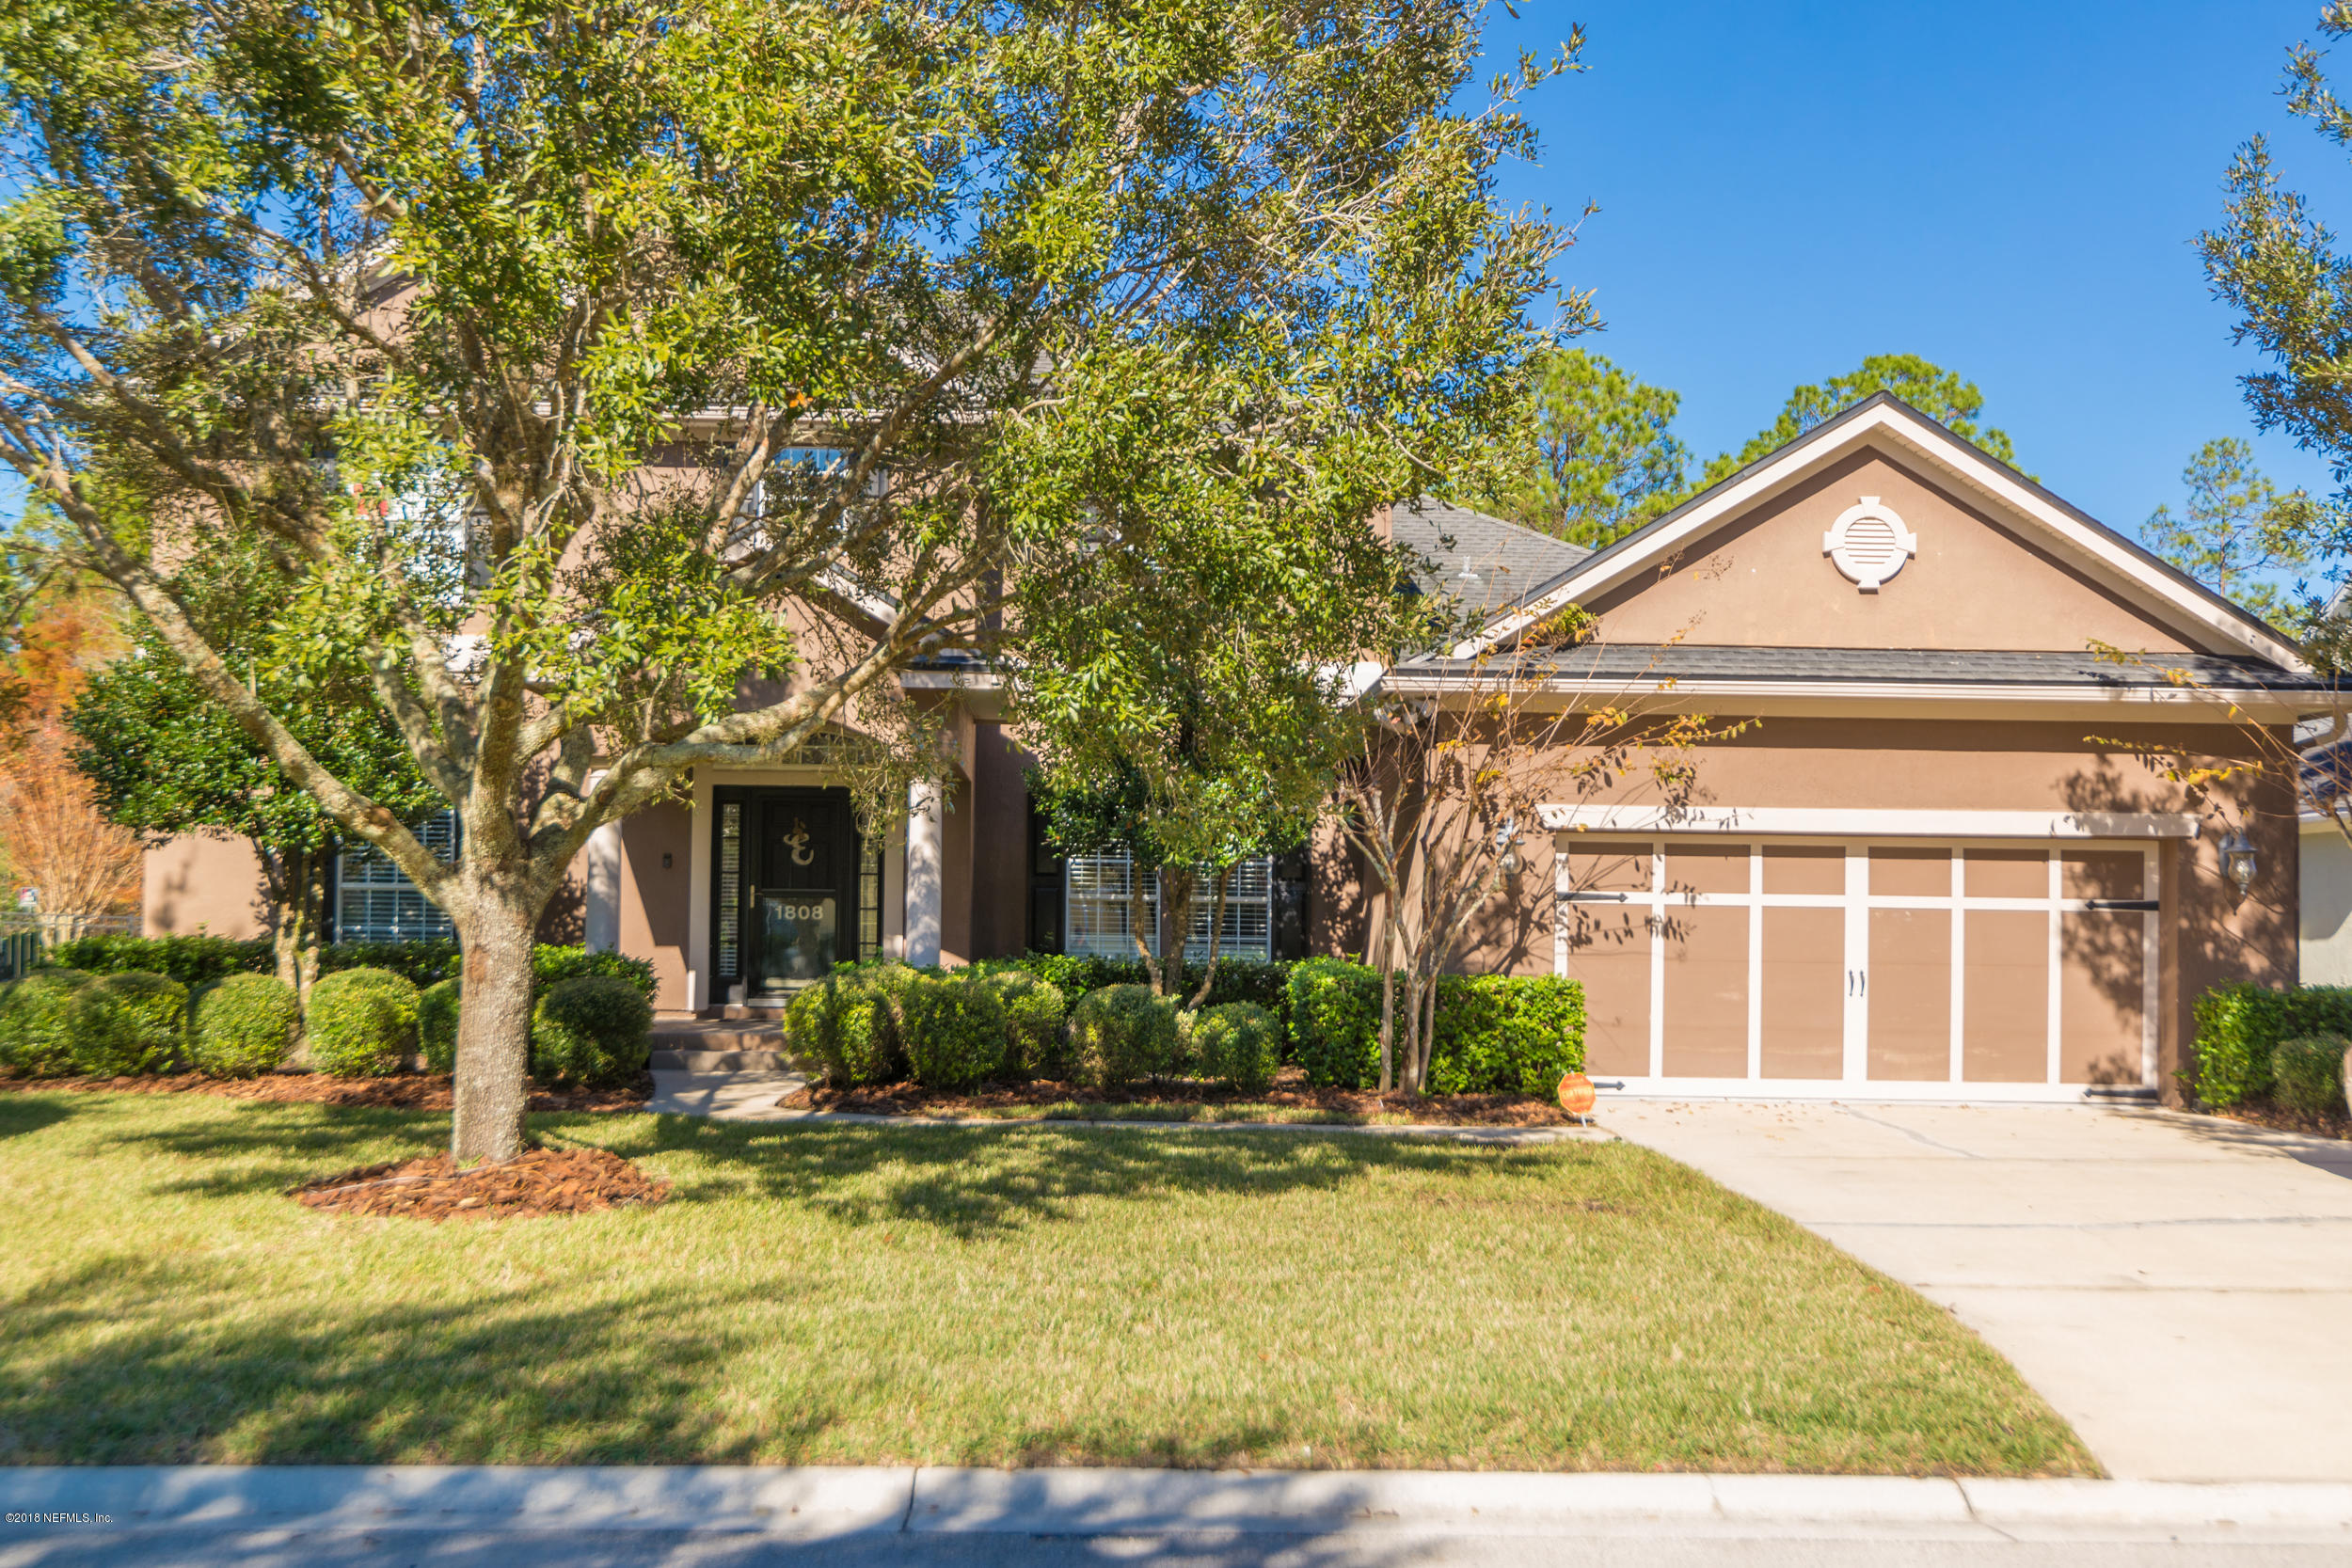 1808 RED HAWK CT ST AUGUSTINE - 2